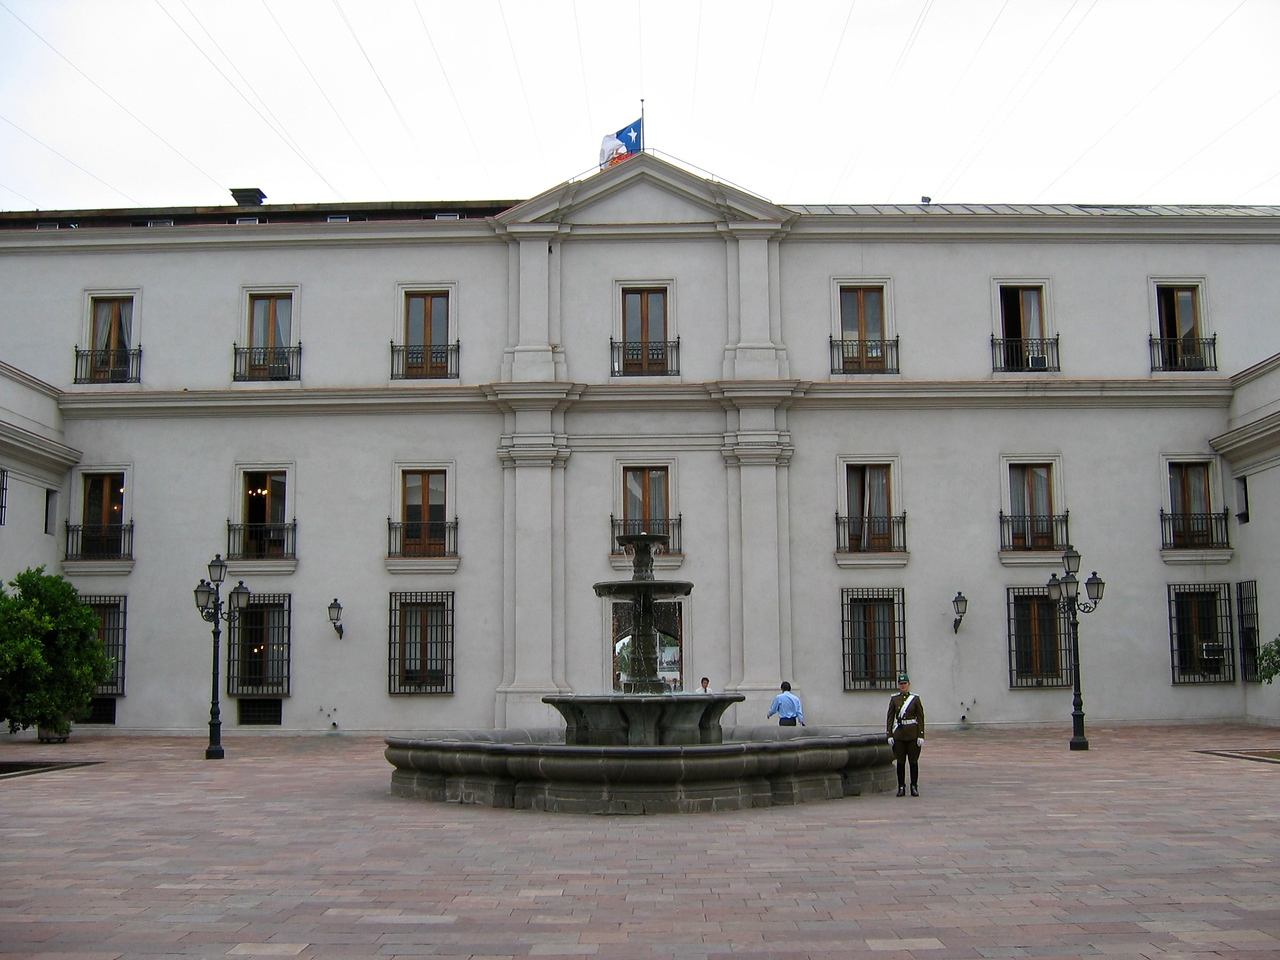 The ornate neoclassical building was designed by Italian architect Joaquín Toesca in the late 18th century, and was originally the official mint – its name means 'the coin.'